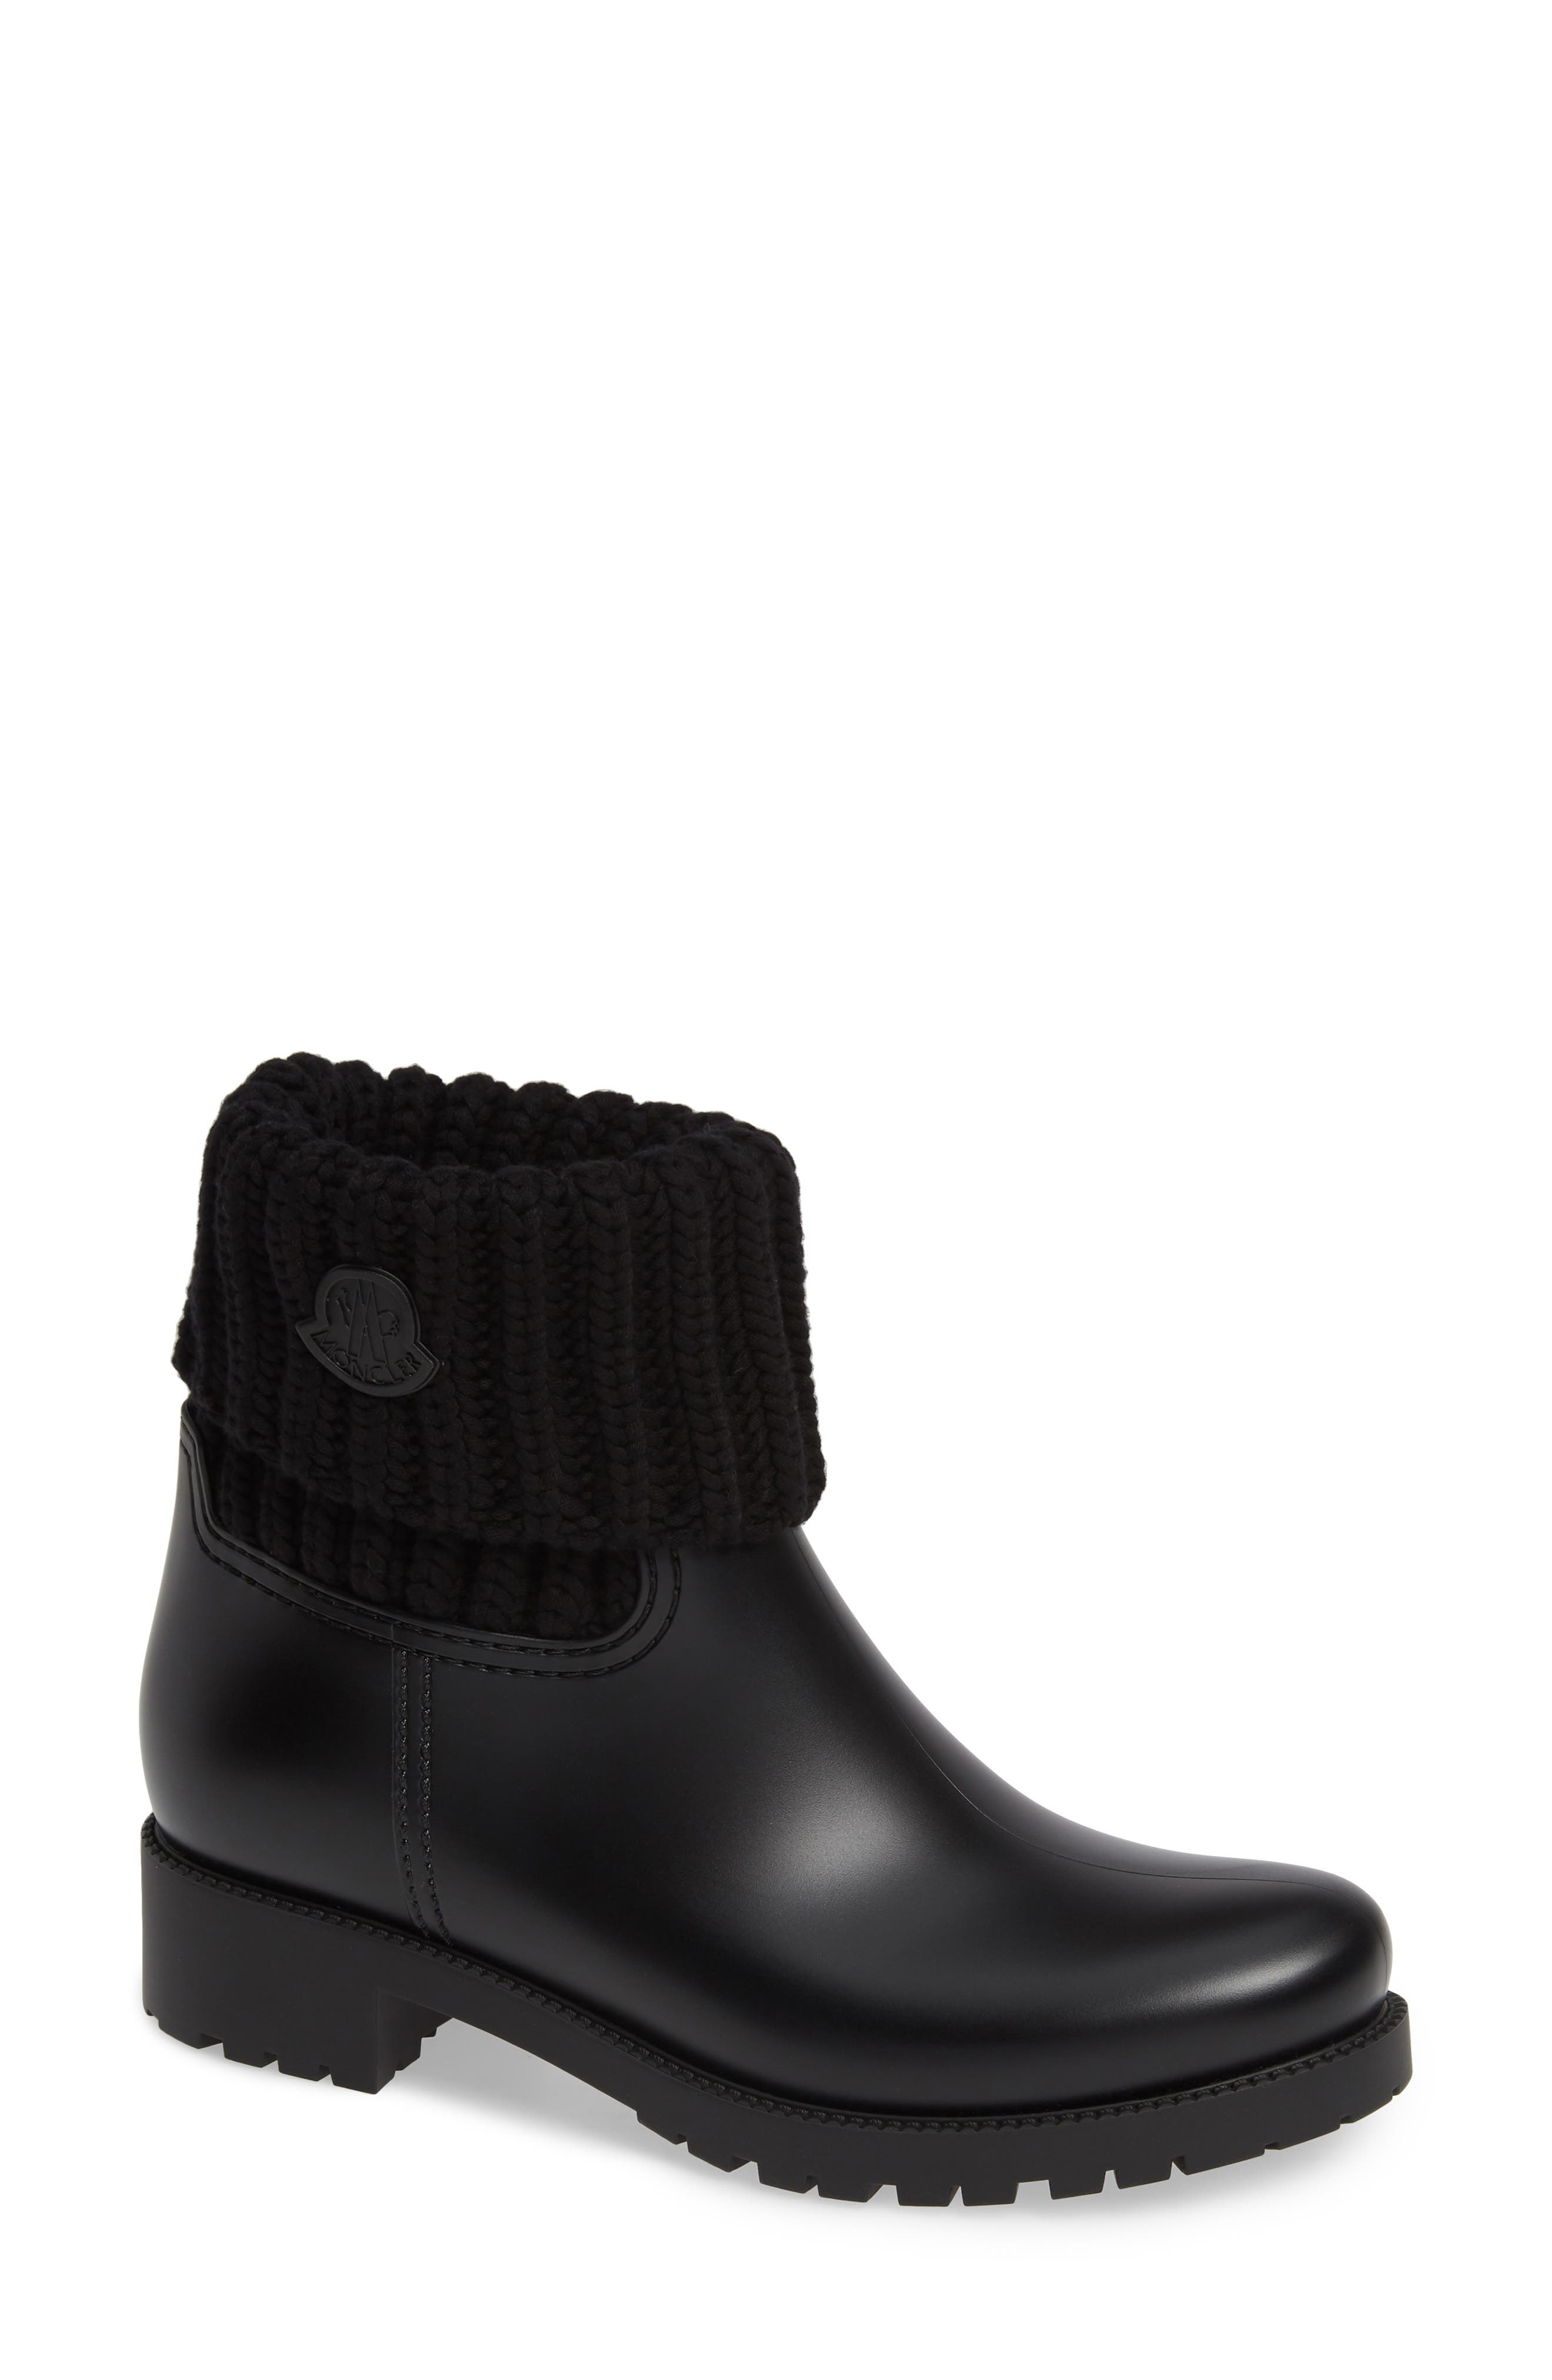 MONCLER, Ginette Stivale Knit Cuff Water Resistant Rain Boot, Main thumbnail 1, color, BLACK